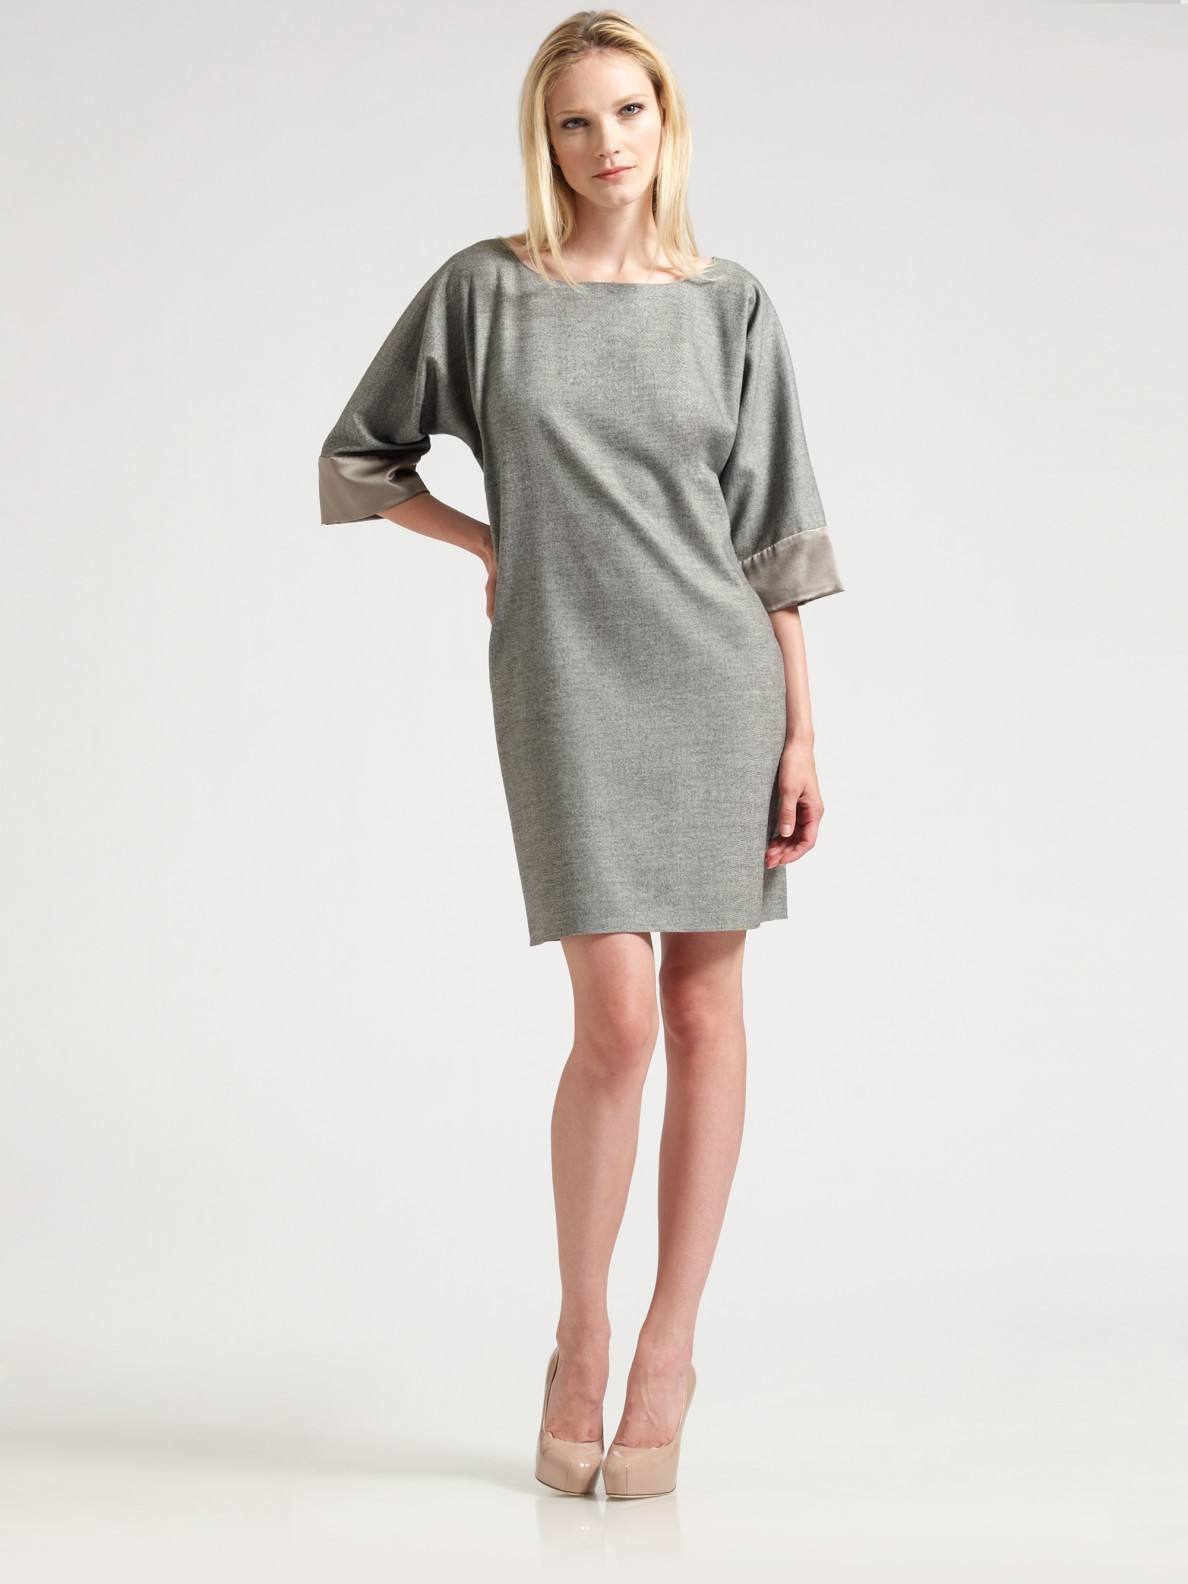 Like a three quarter sleeve top, this type of dress offers you that in-between temperature where a long sleeve might be too hot and a short sleeve, too cold. It is kind of like capris for your arms. The shorter sleeve length offers a nice option when layering with a blazer or sweater, yet is long enough to avoid being accused of emulating.